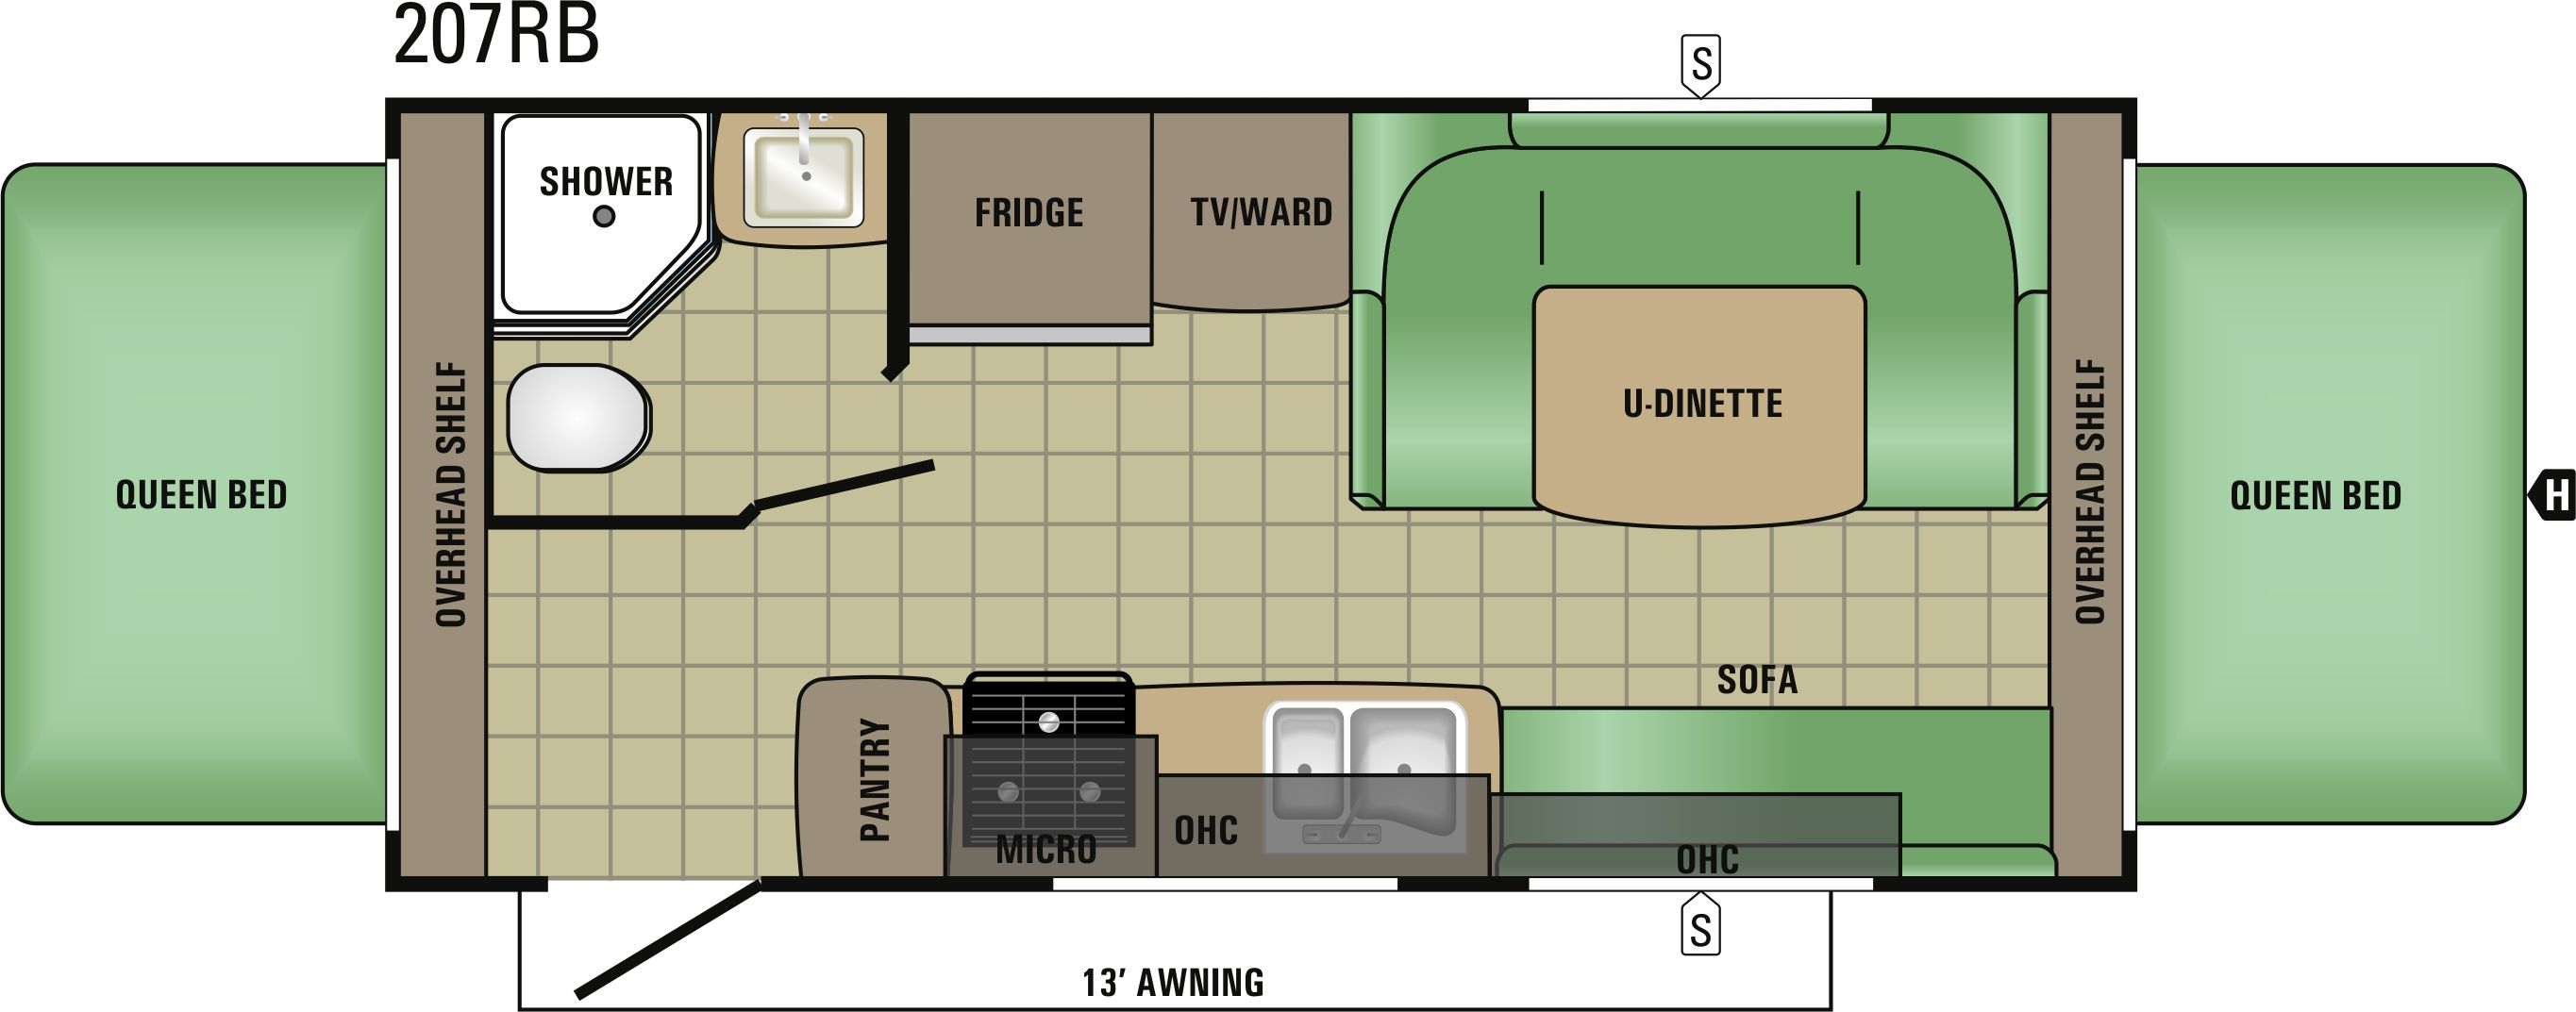 207RB Floorplan